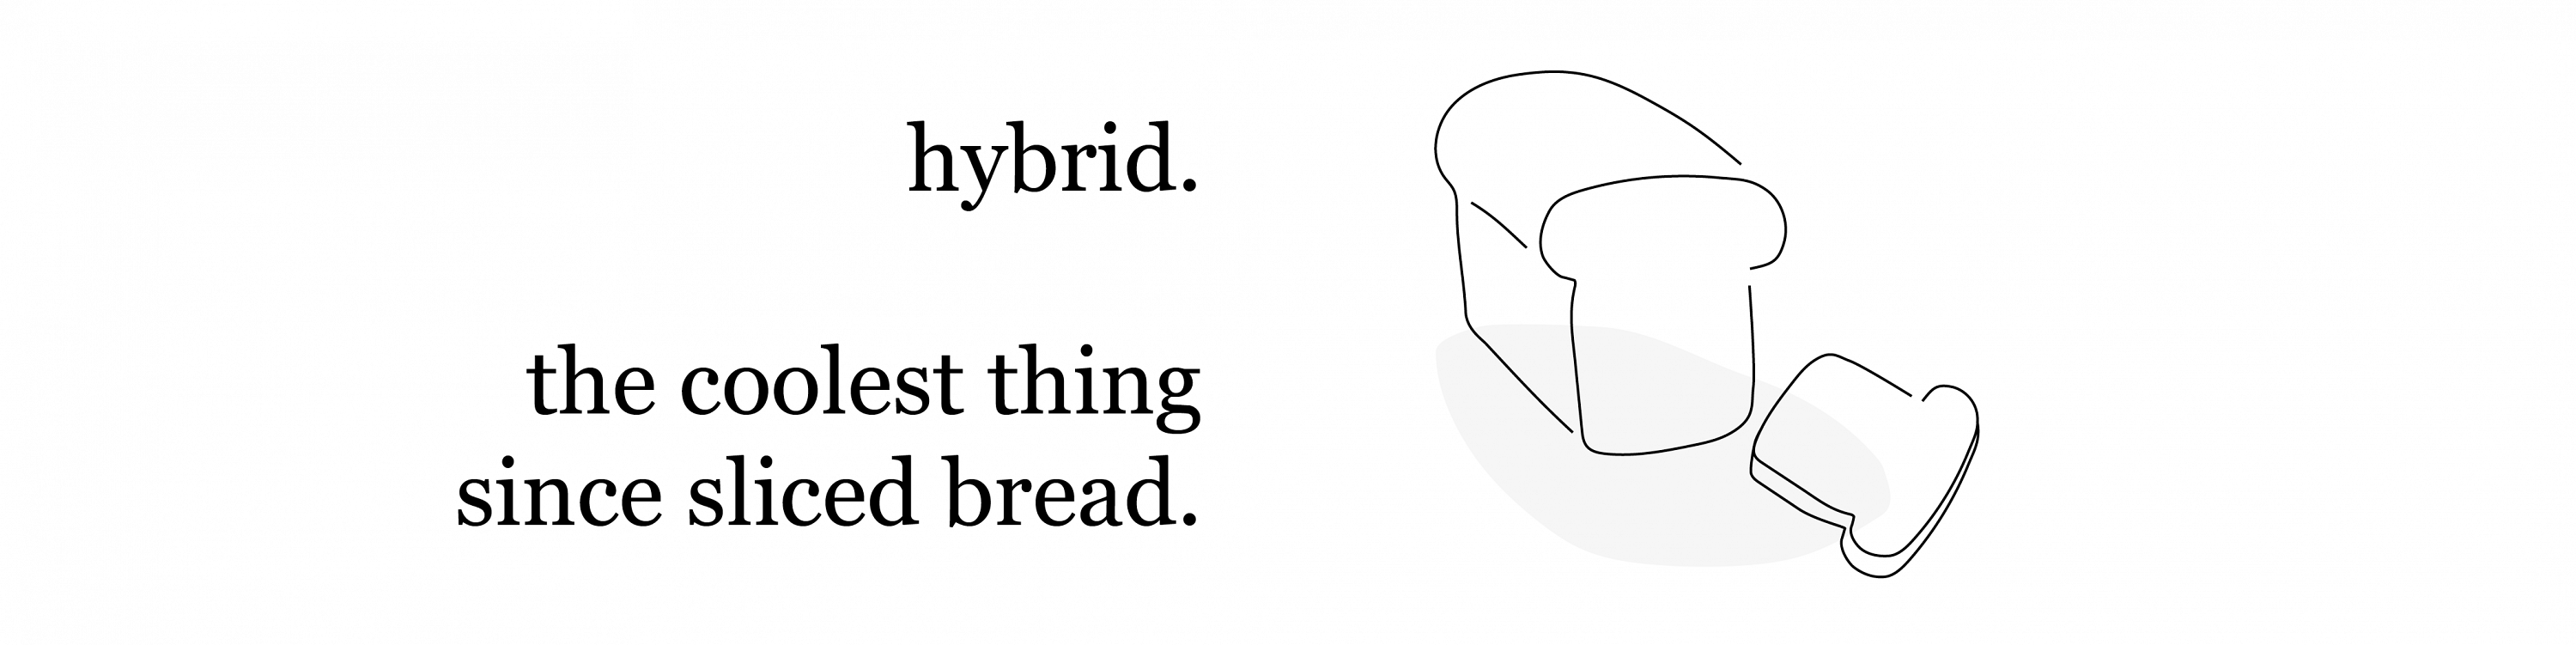 Hybrid. the coolest thing since sliced bread.